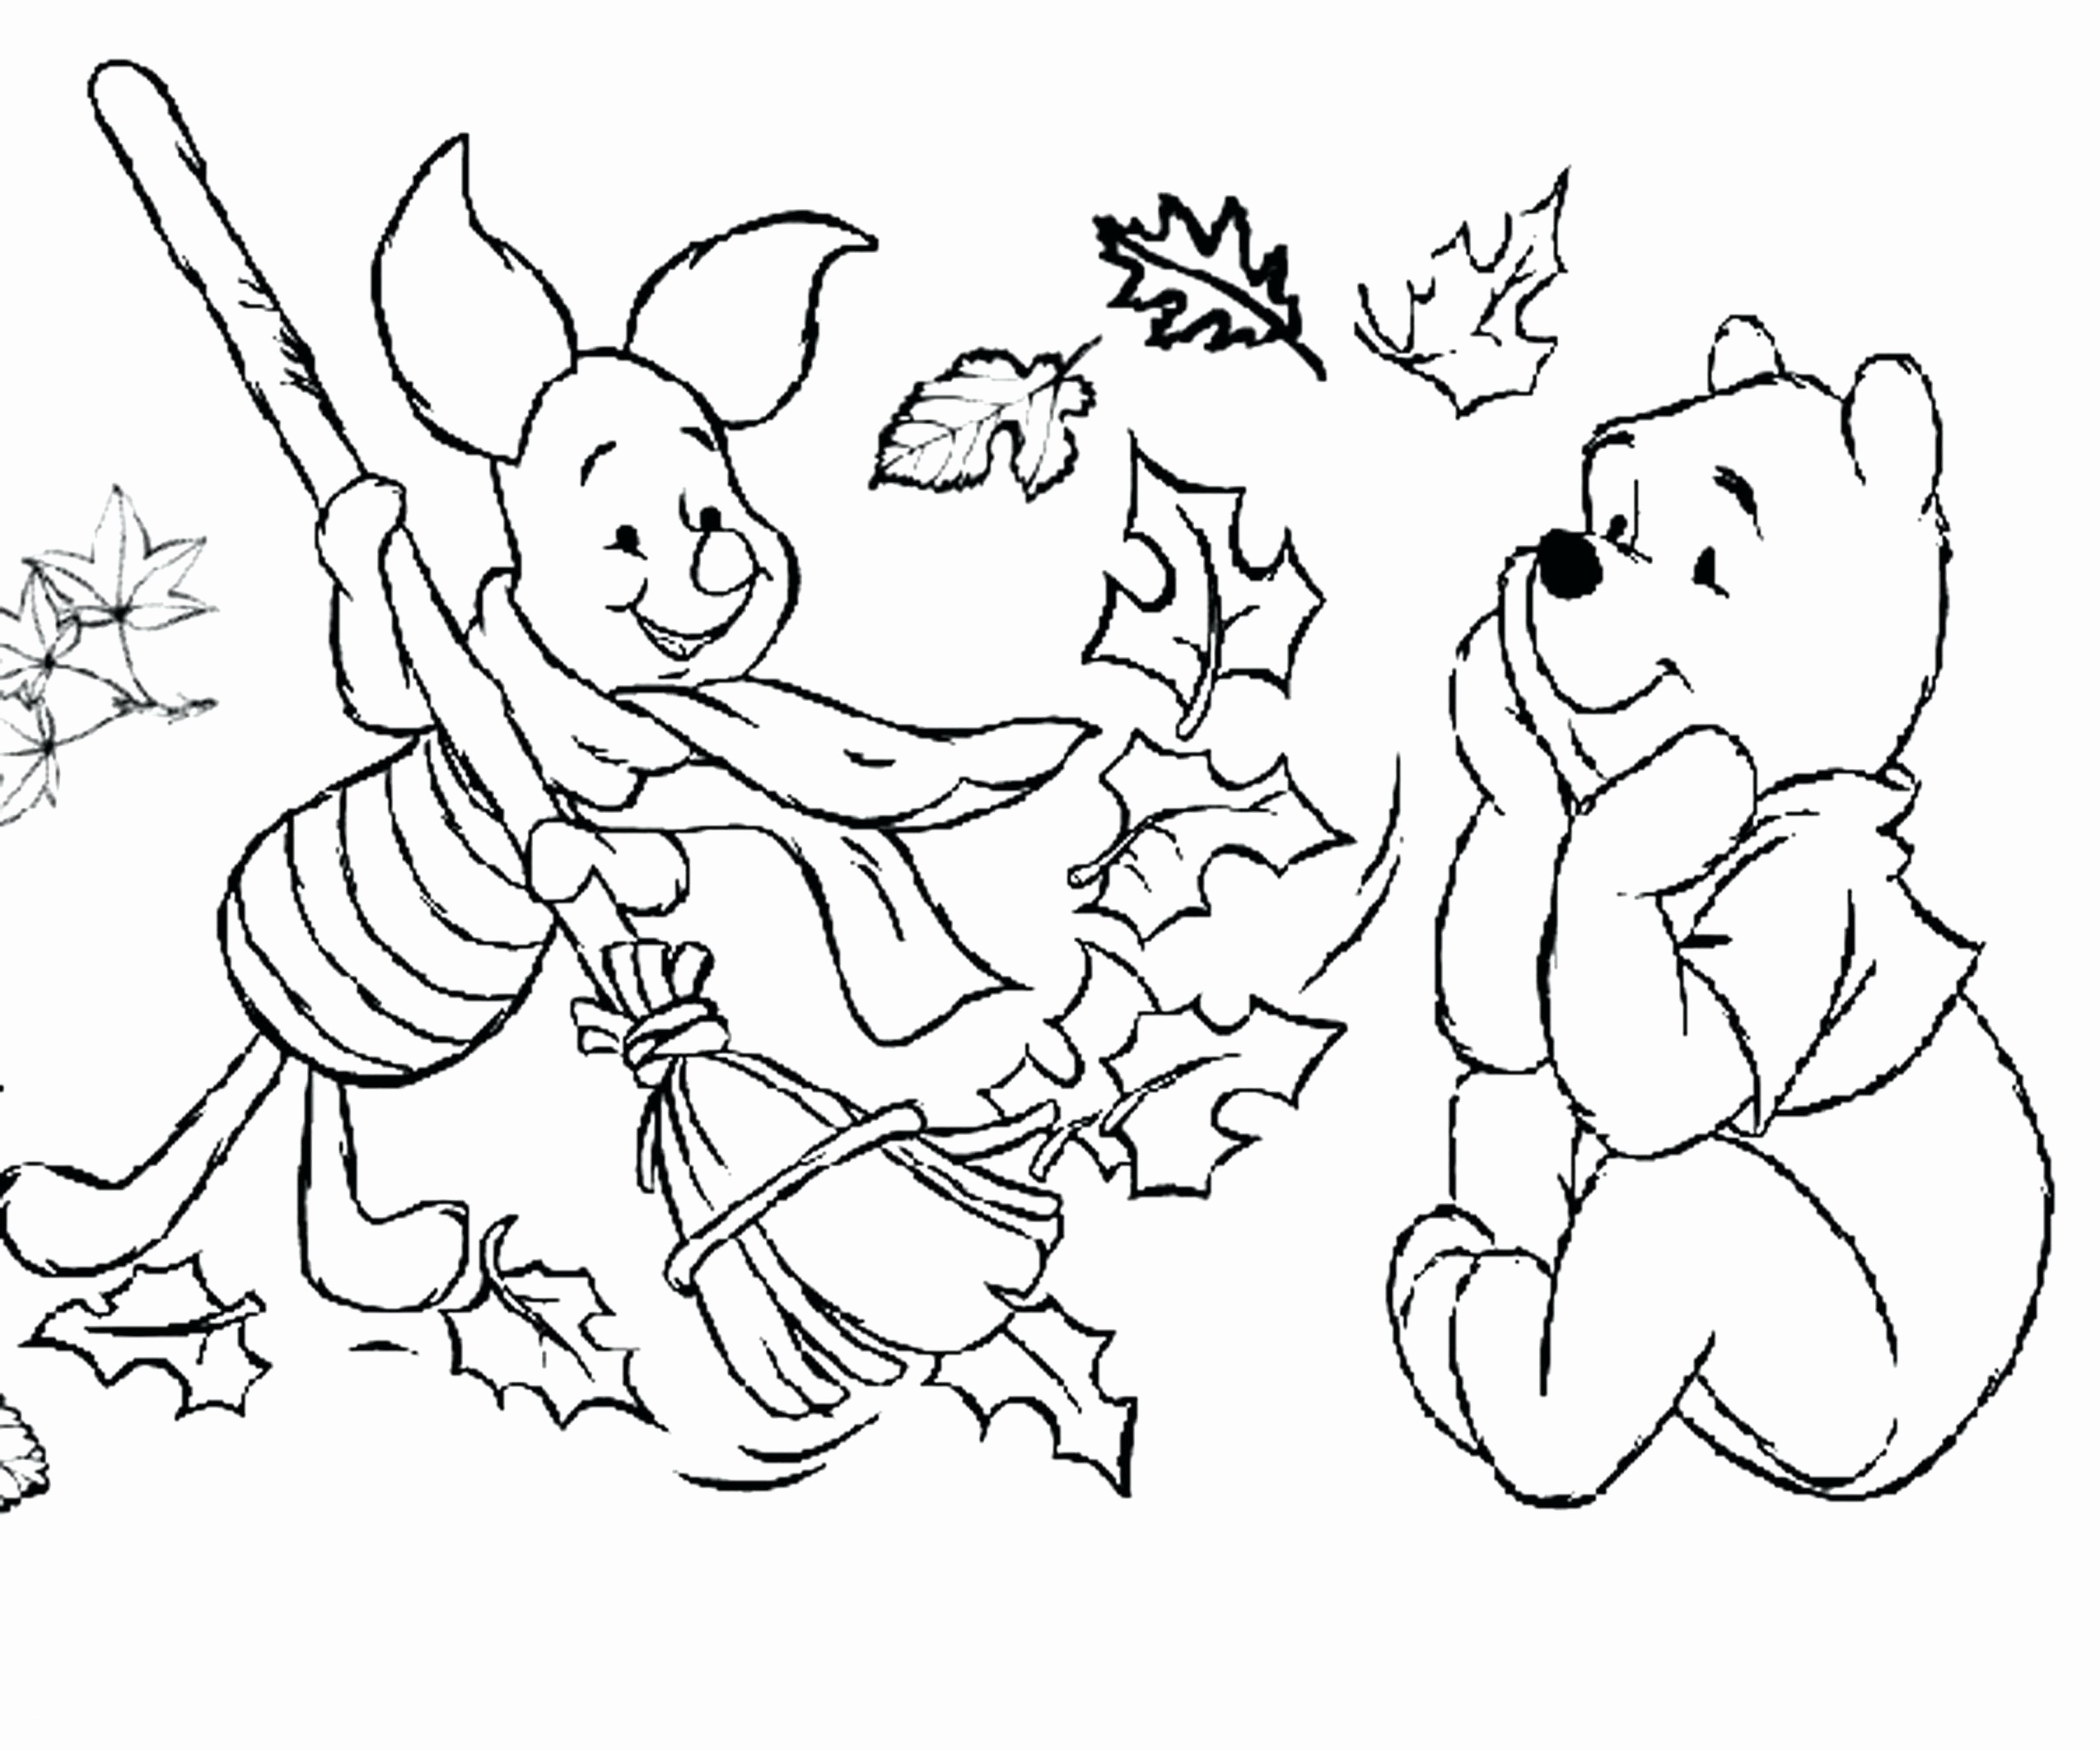 Gnome Coloring Pages  Printable 16d - To print for your project